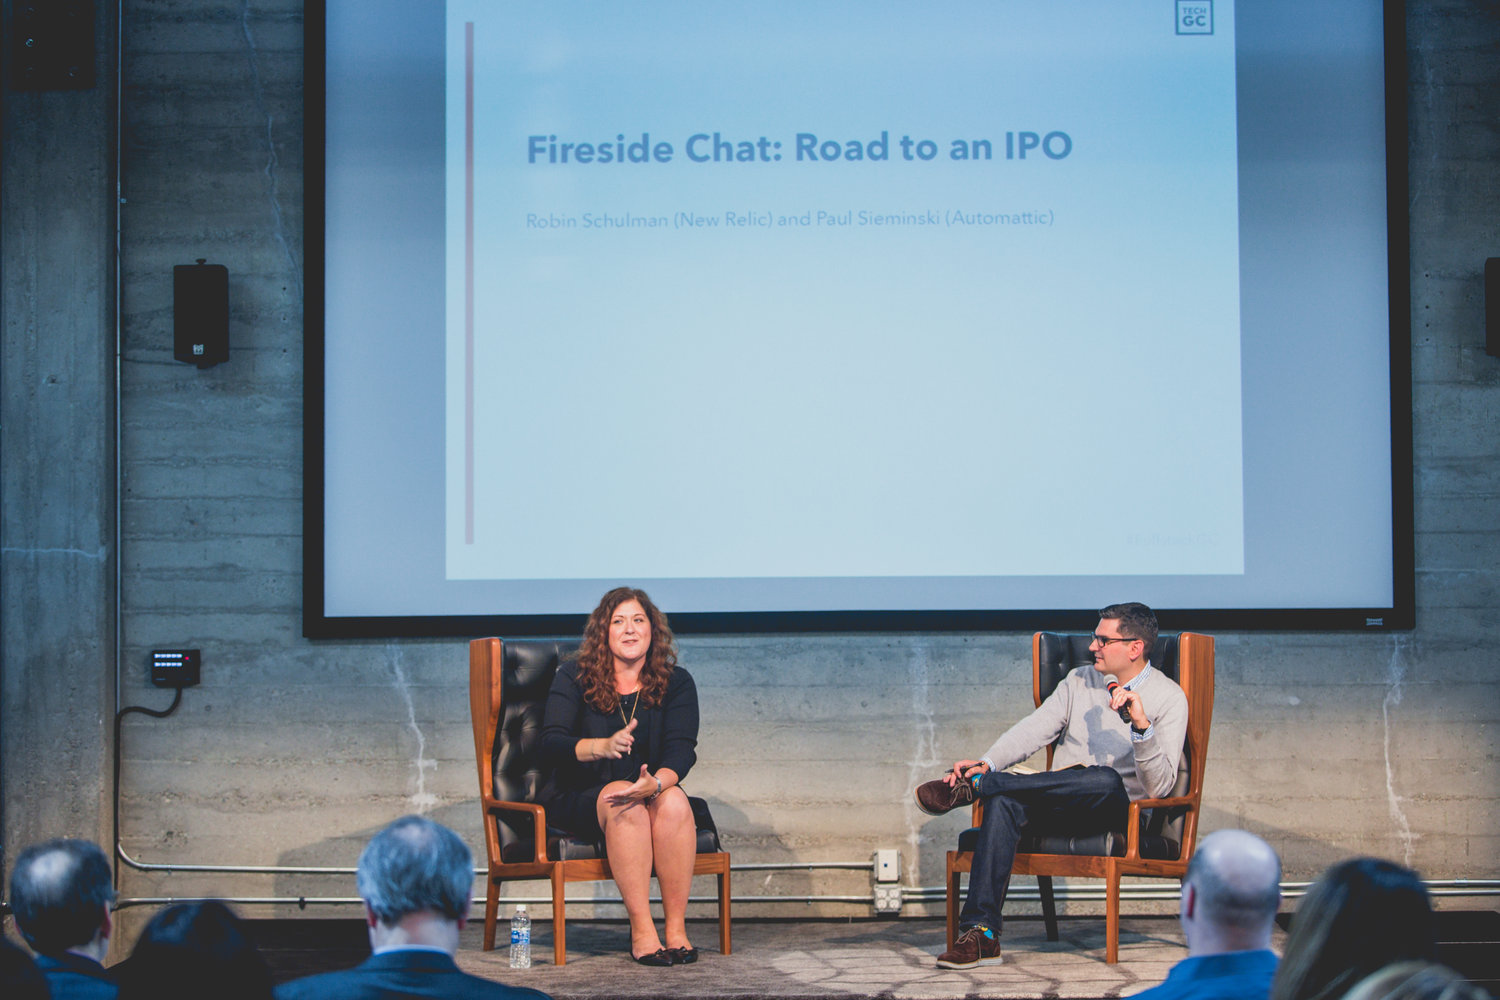 Fireside Chat: Road to an IPO